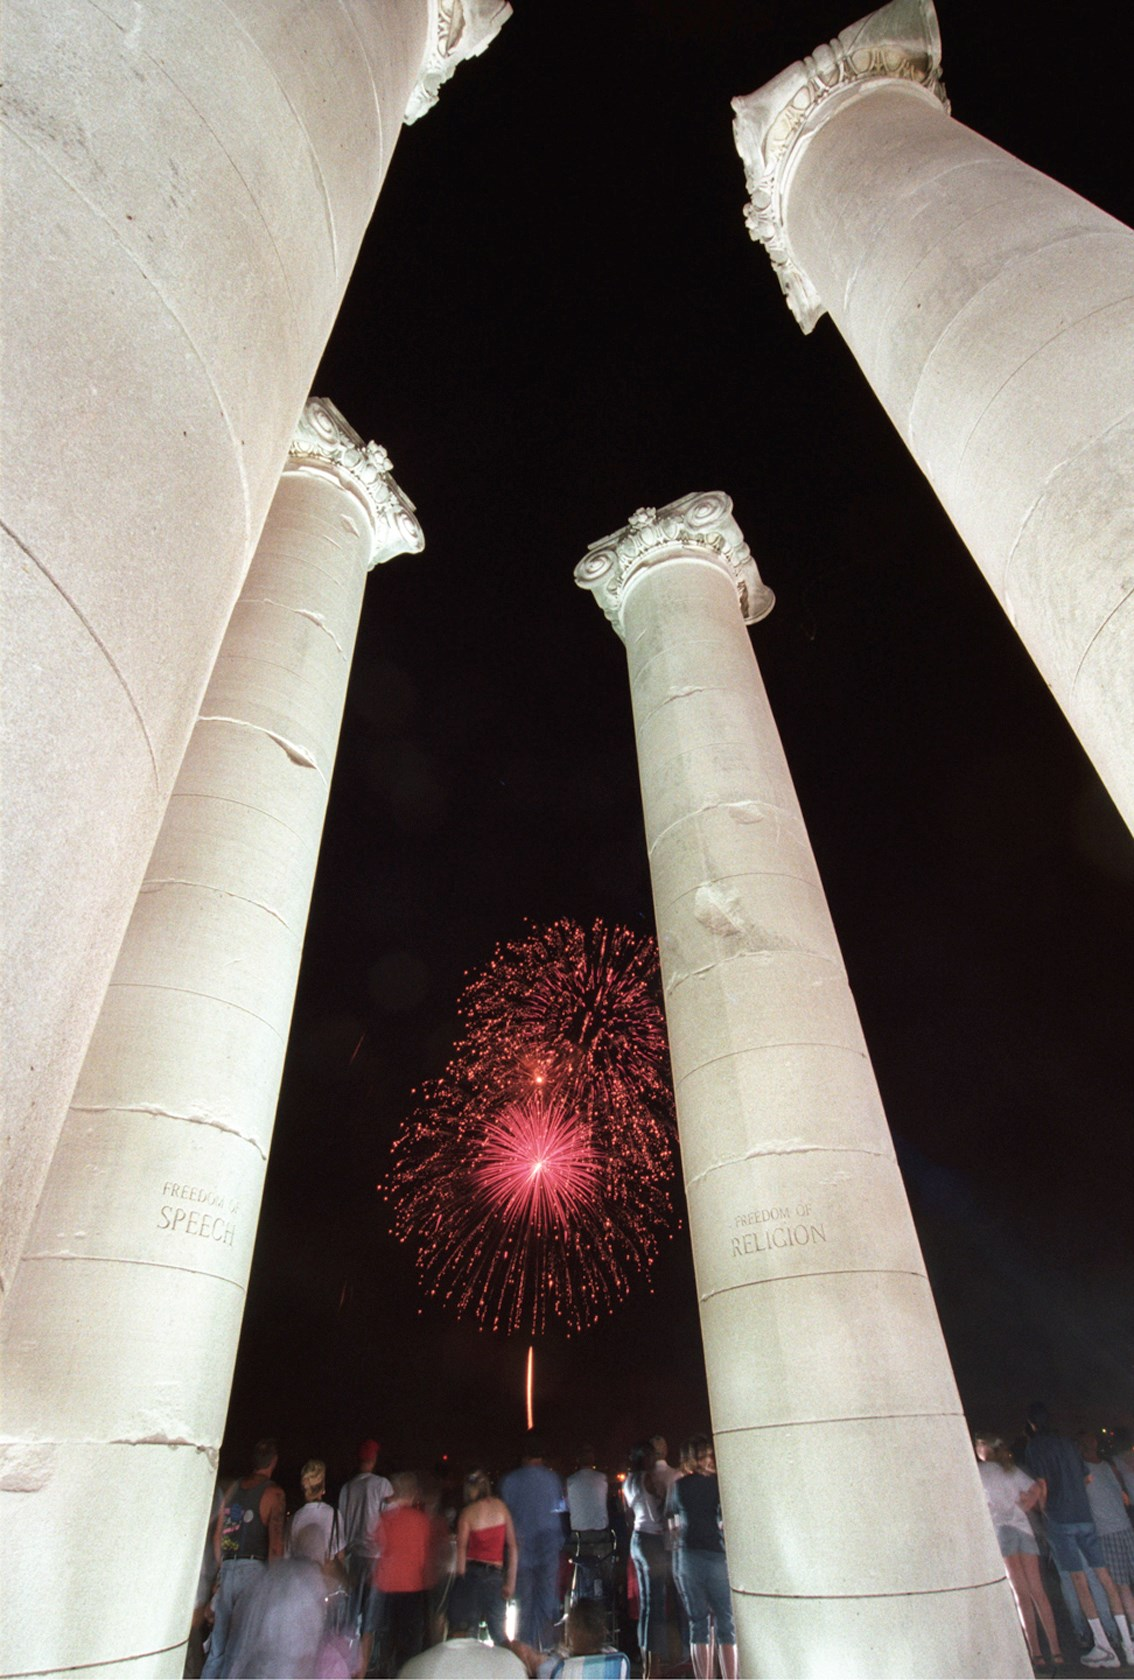 Fireworks at the Four Freedoms Monument